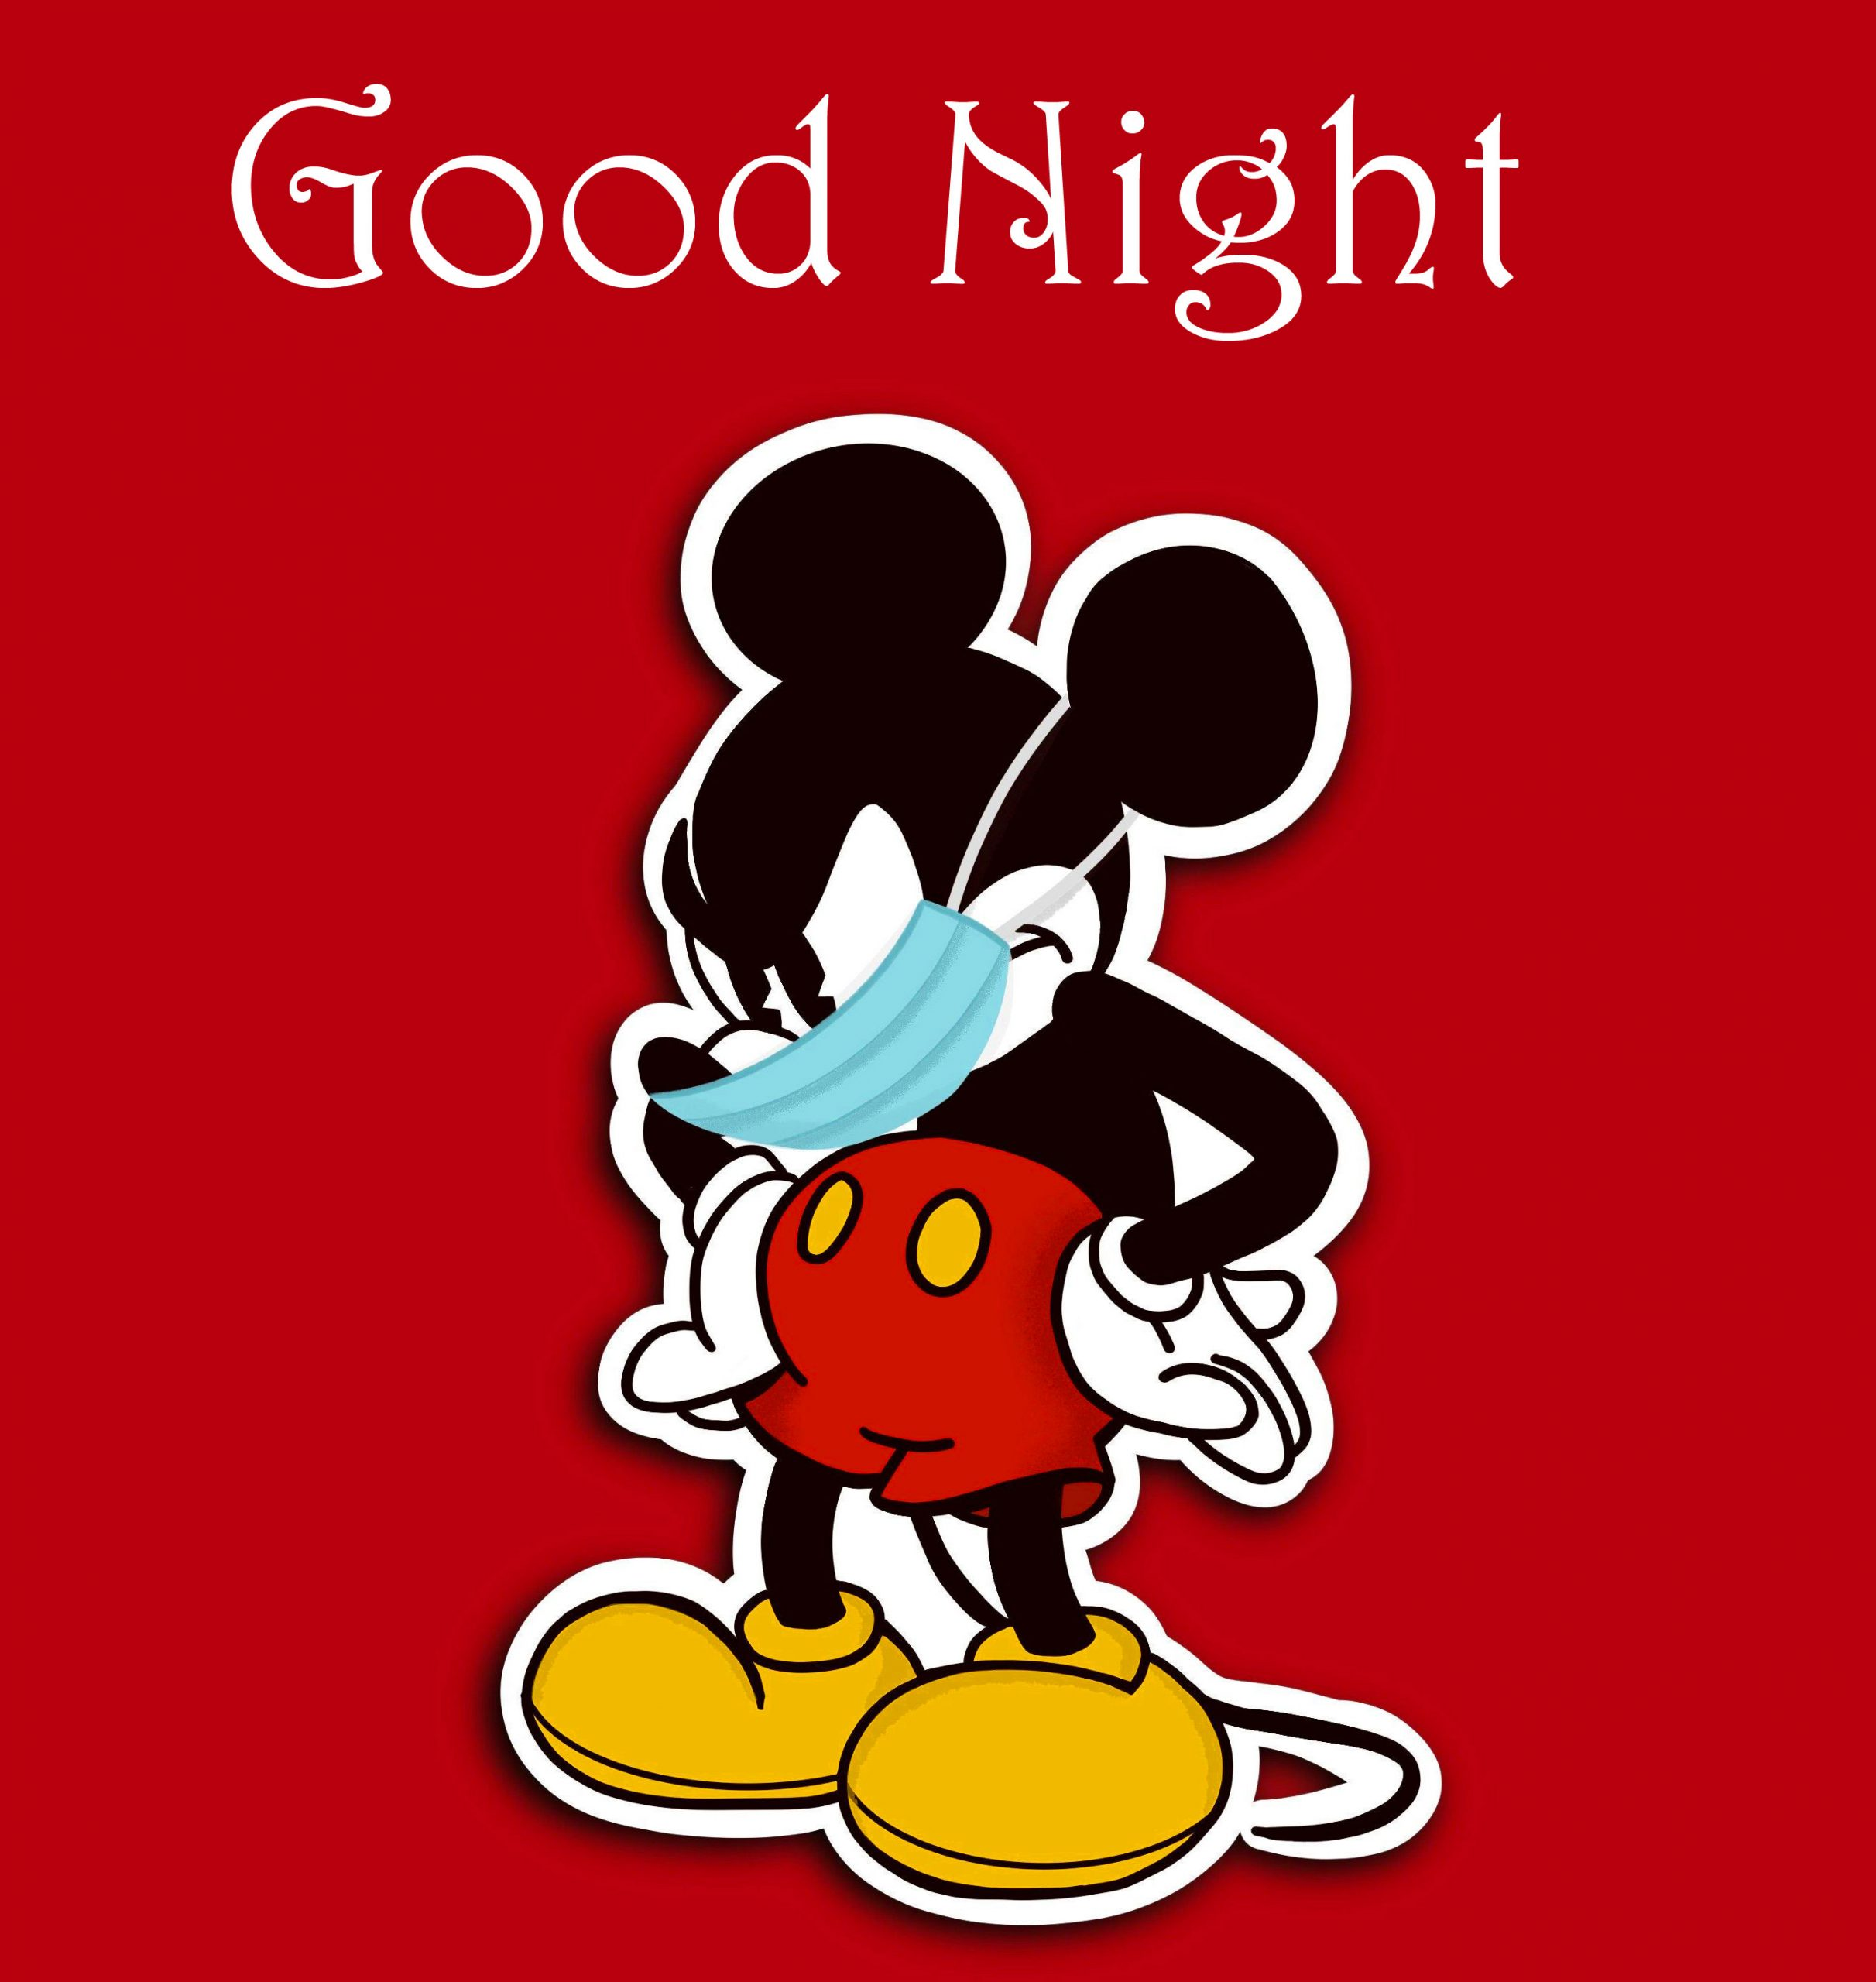 Lovely Mickey Mouse with Mask and Good Night Wish